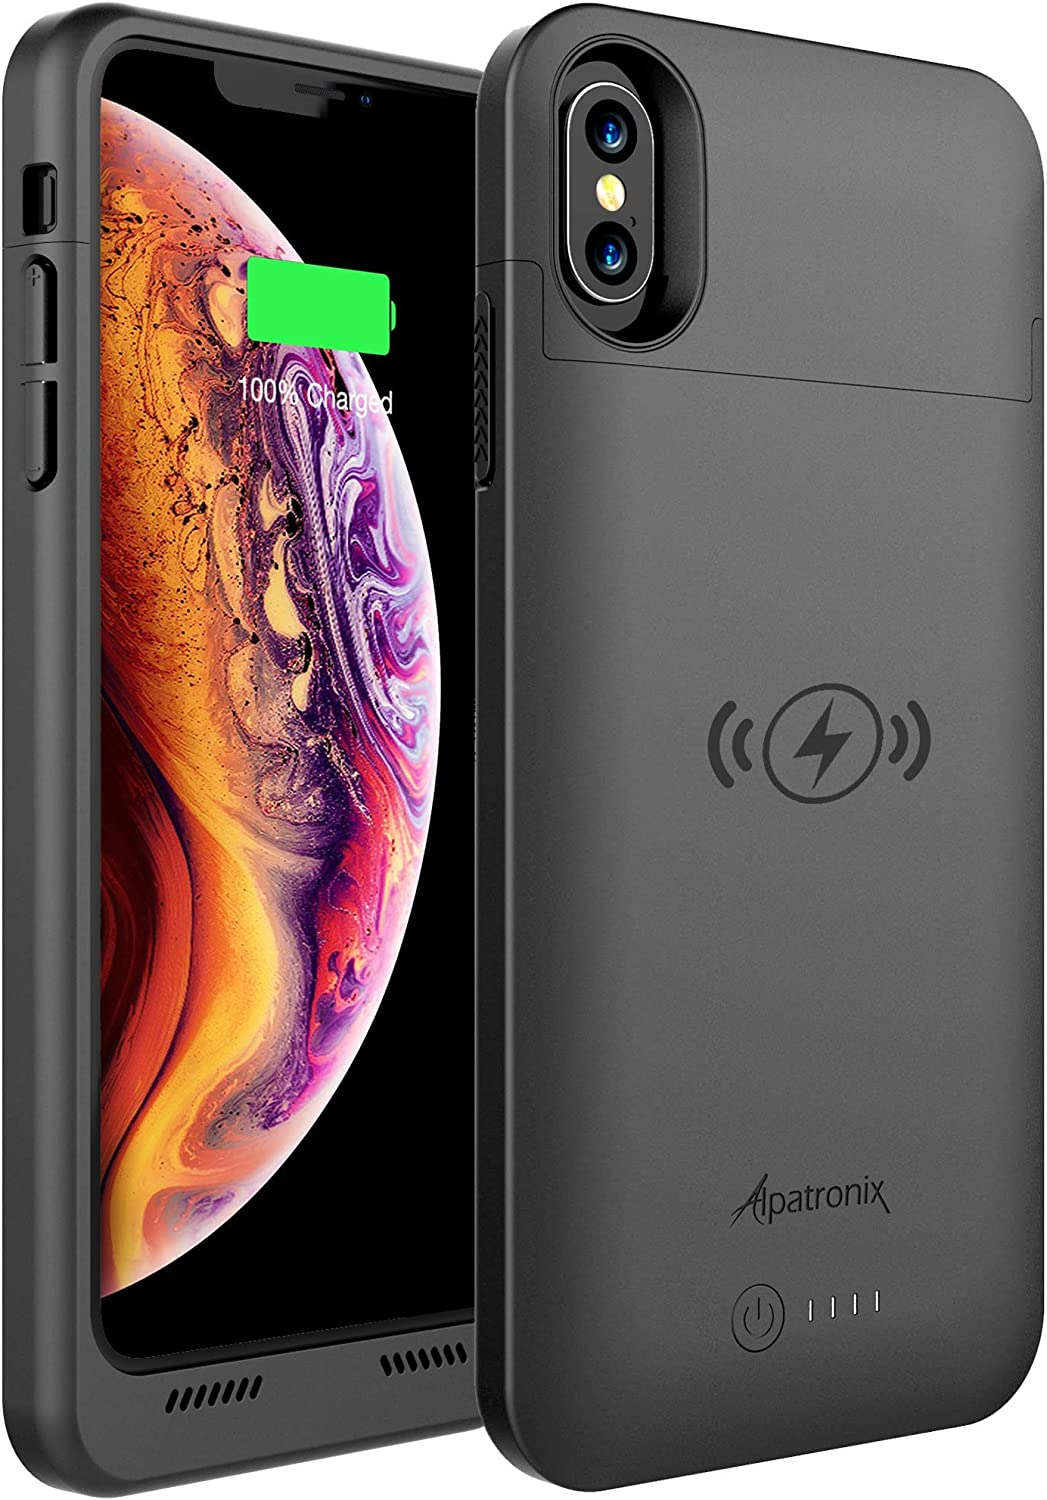 Alpatronix 4200mAh Battery Case with Qi Wireless Charging Compatible for iPhone Xs & X (5.8-inch) (Black)